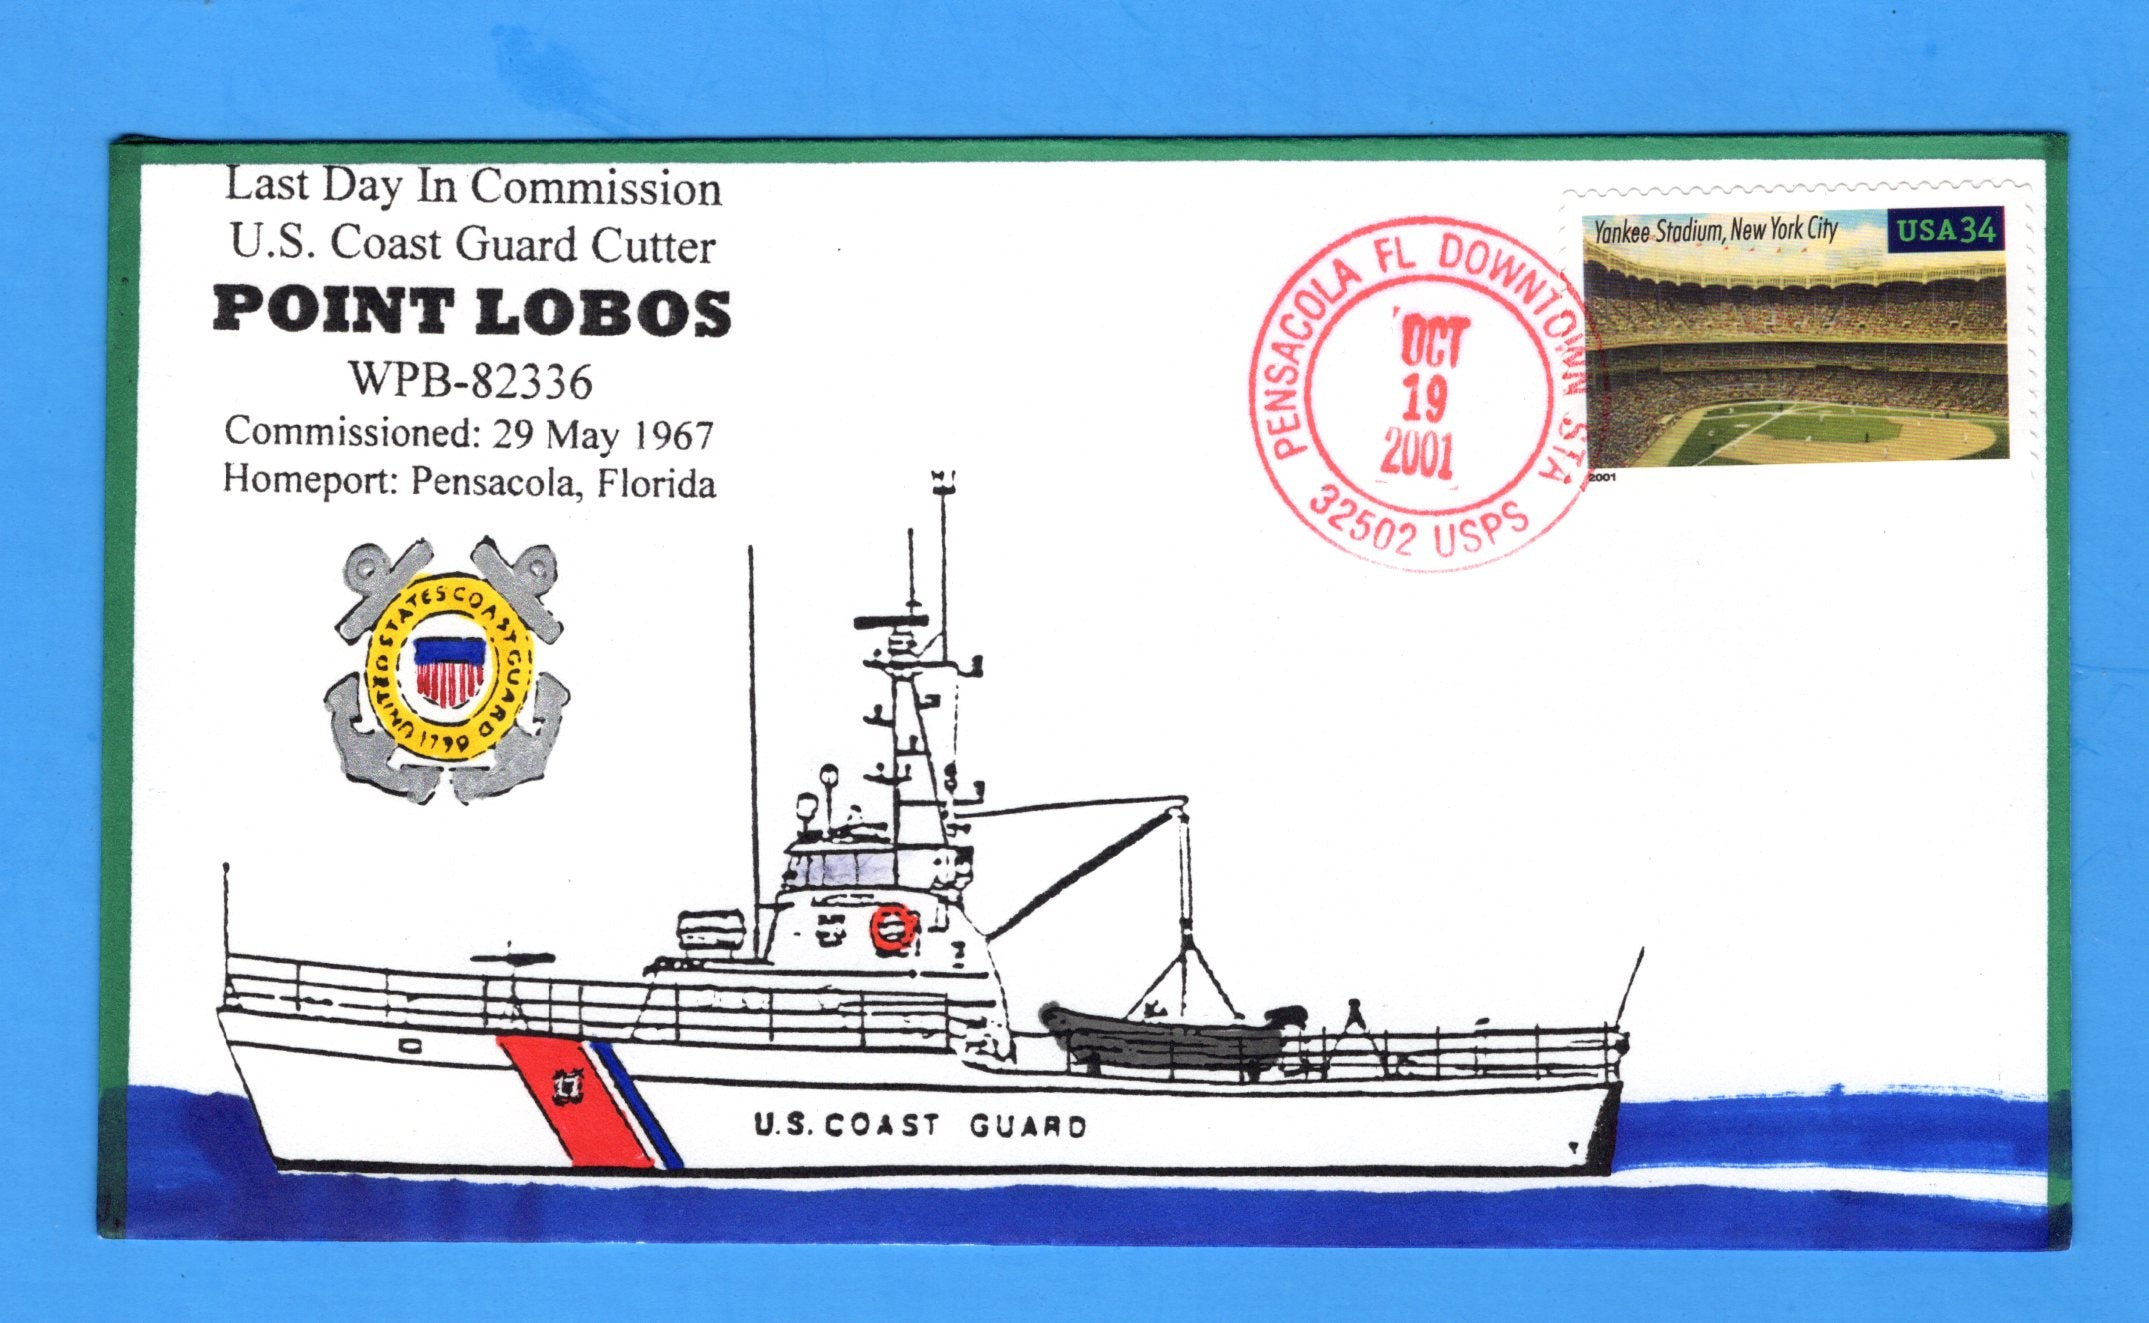 USCGC Point Lobos WPB-82336 Last Day in Commission October 19, 2001 - Hand Drawn and Colored Cachet by Bill Everett